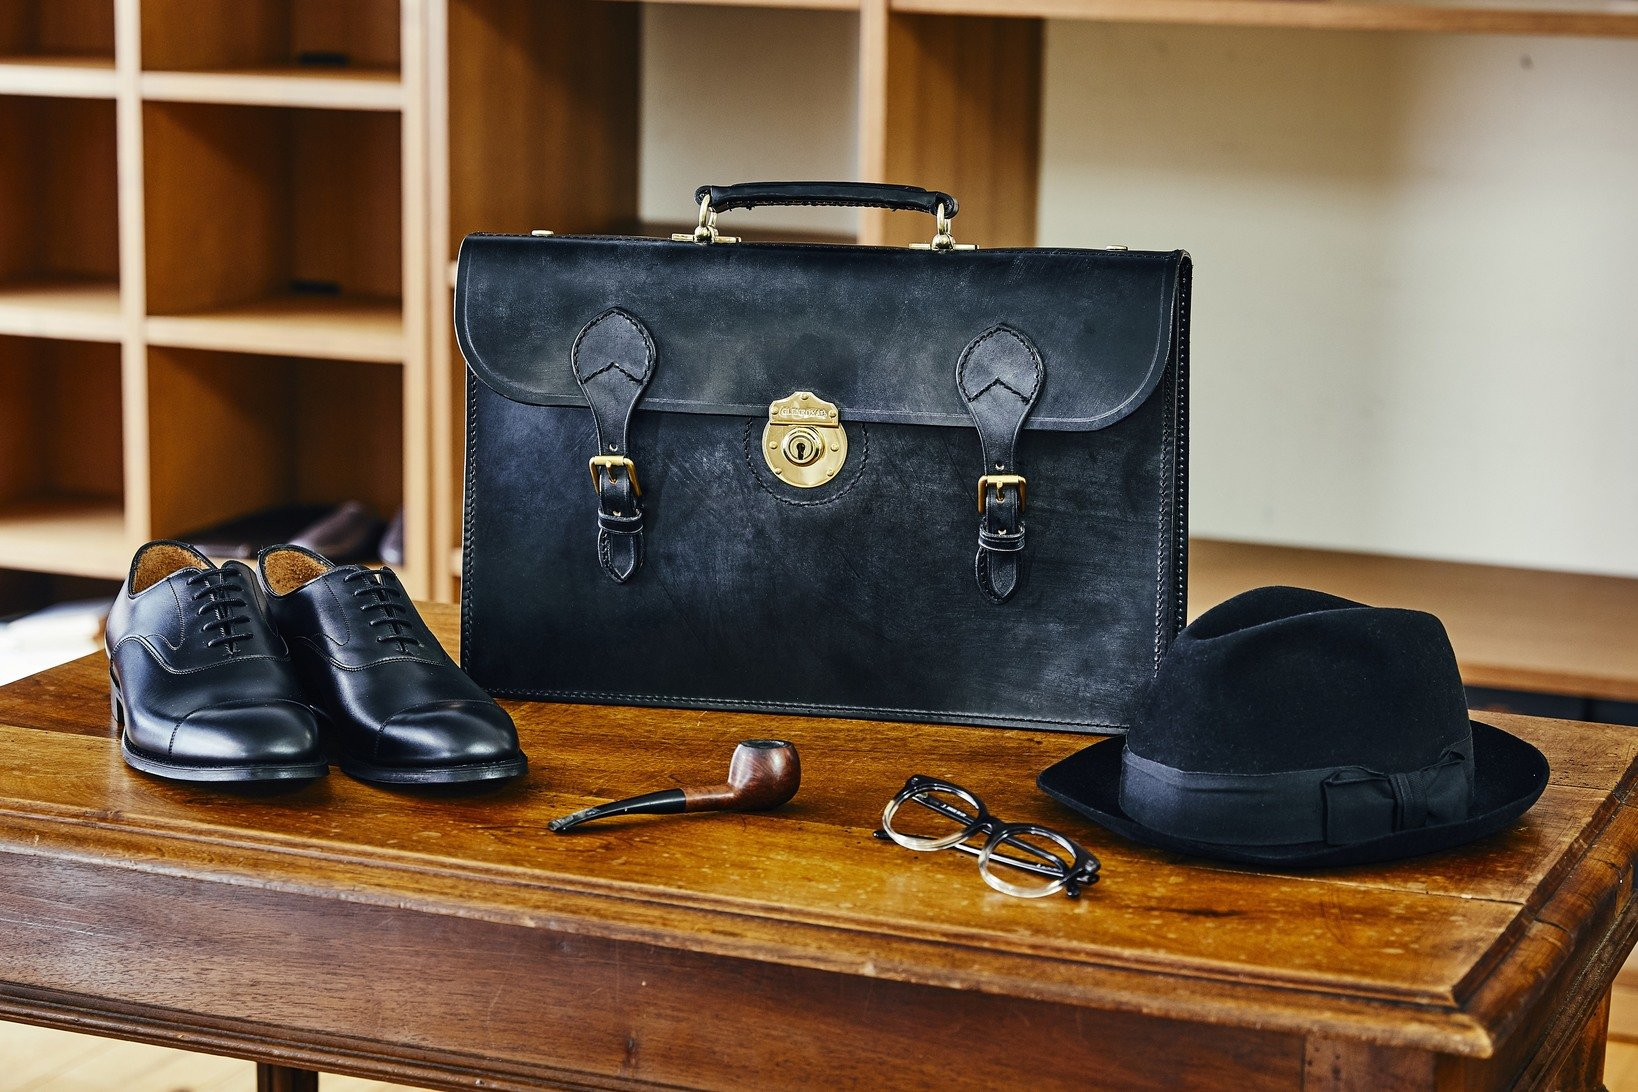 "<a href=""https://www.british-made.jp/fs/british/glenroyal-businessbag/gd29?utm_source=muuseo&utm_campaign=tie_up"">2コンパートメントブリーフケース</a>"